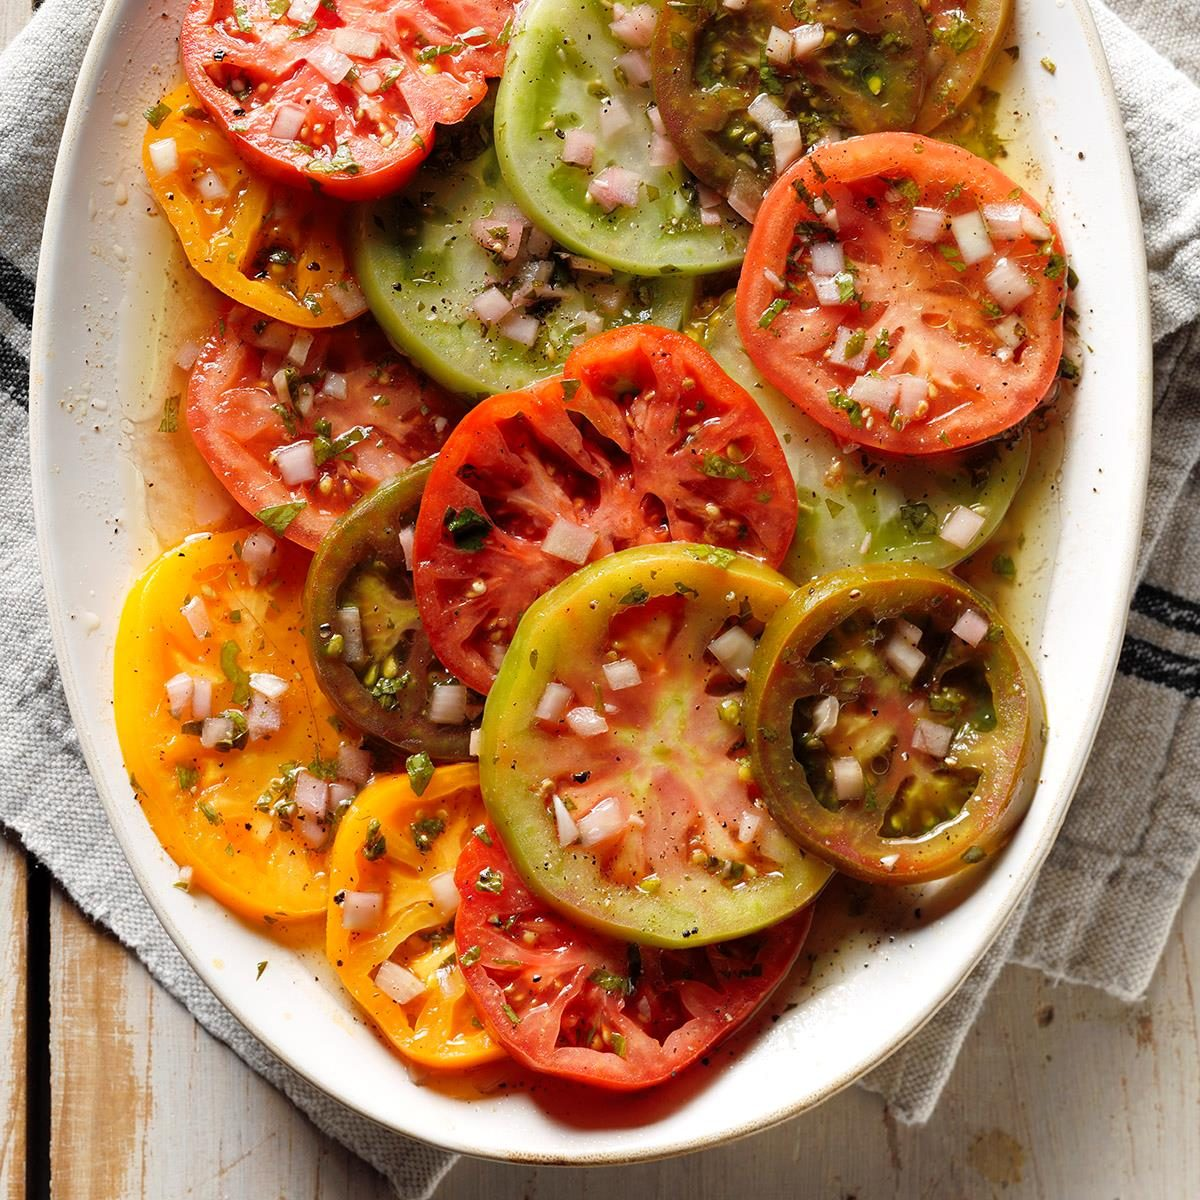 Tomatoes: Tasty Marinated Tomatoes